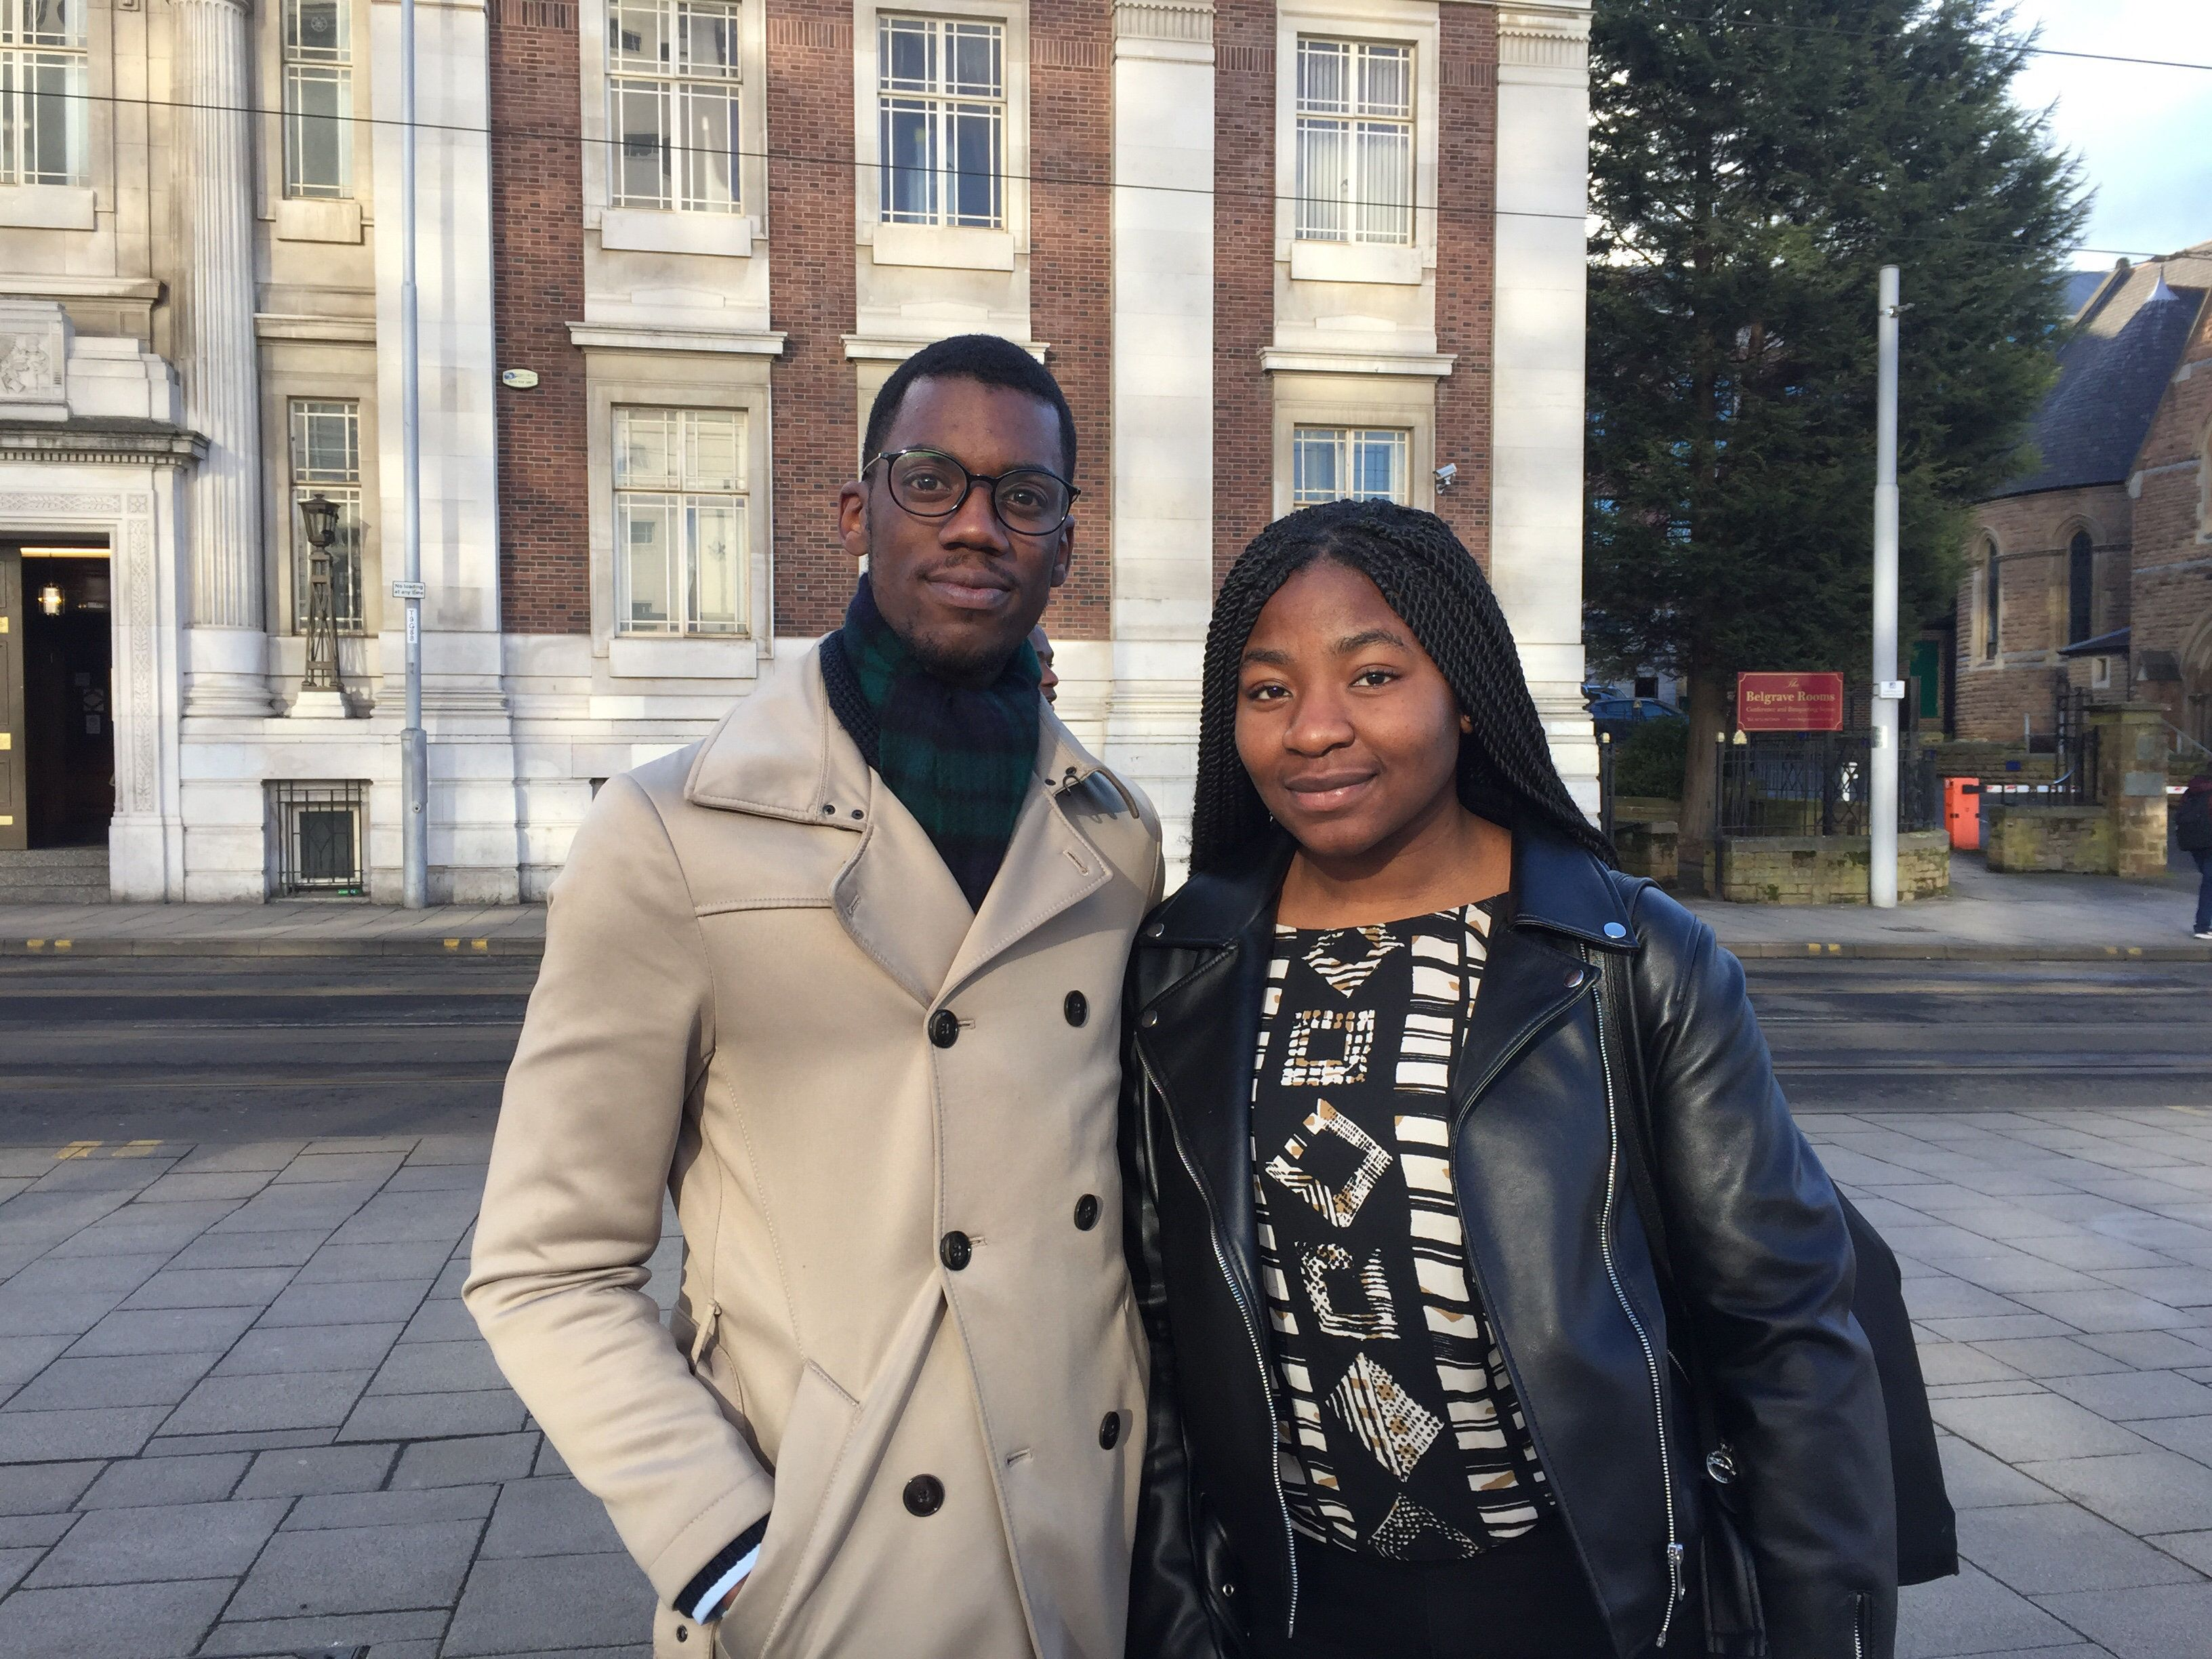 Nottingham Trent University students Michael Parker Langdon and Mary Okpo said they were 'shocked' by the incident